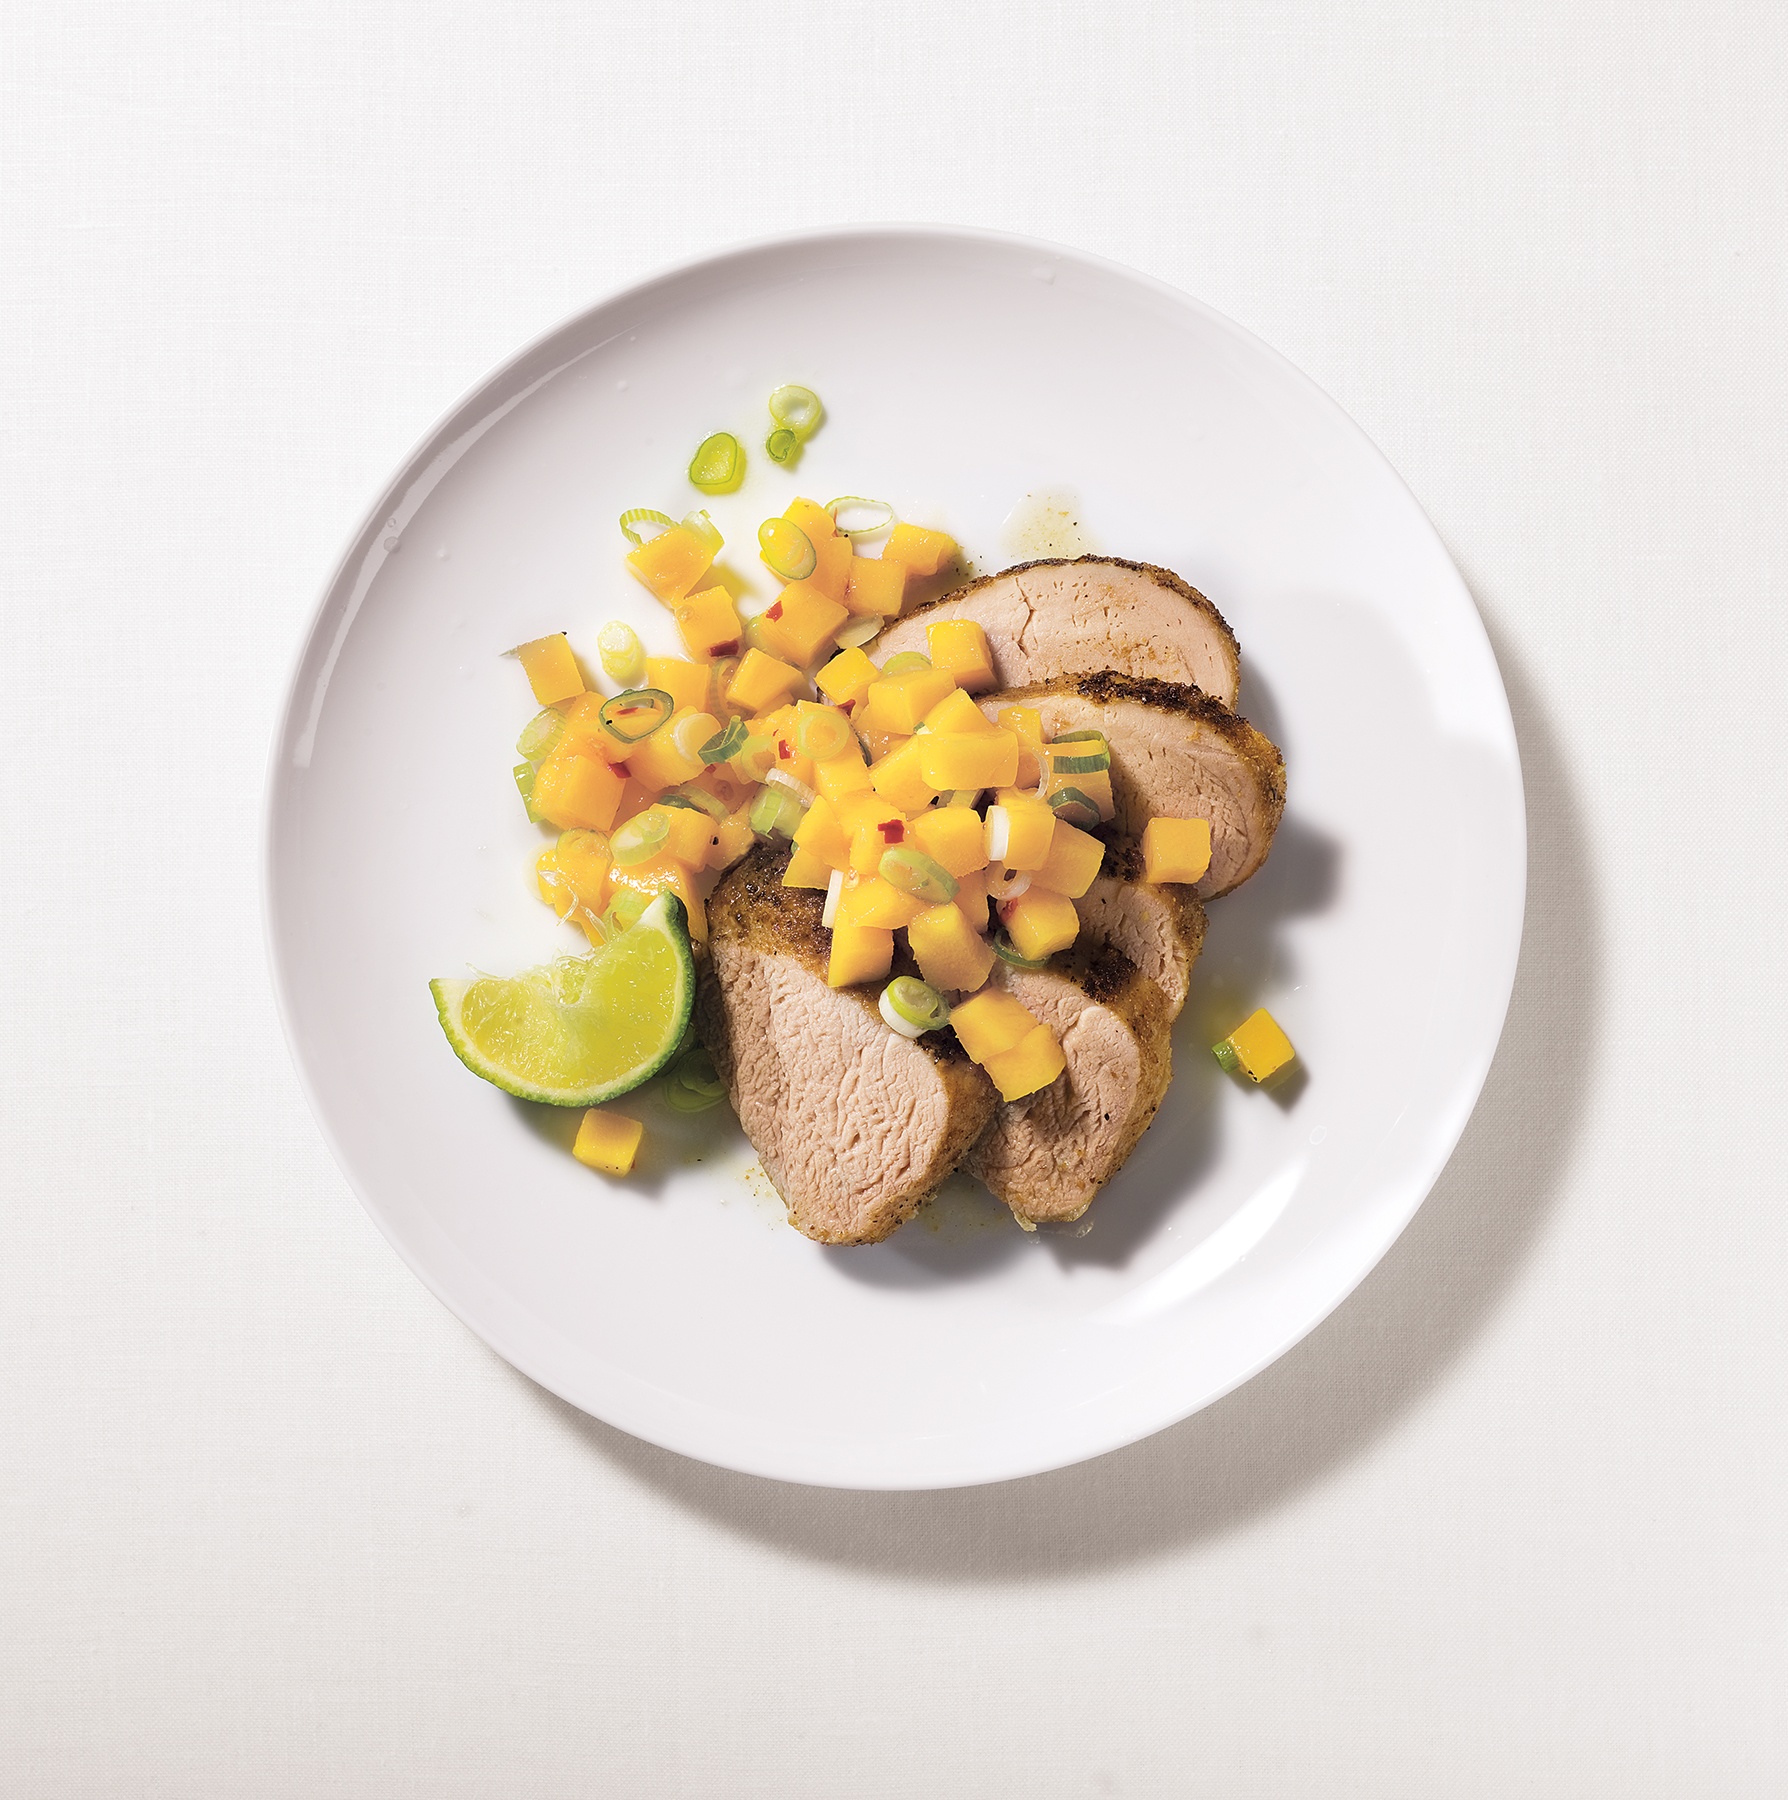 Caribbean Tenderloin With Mango Salsa